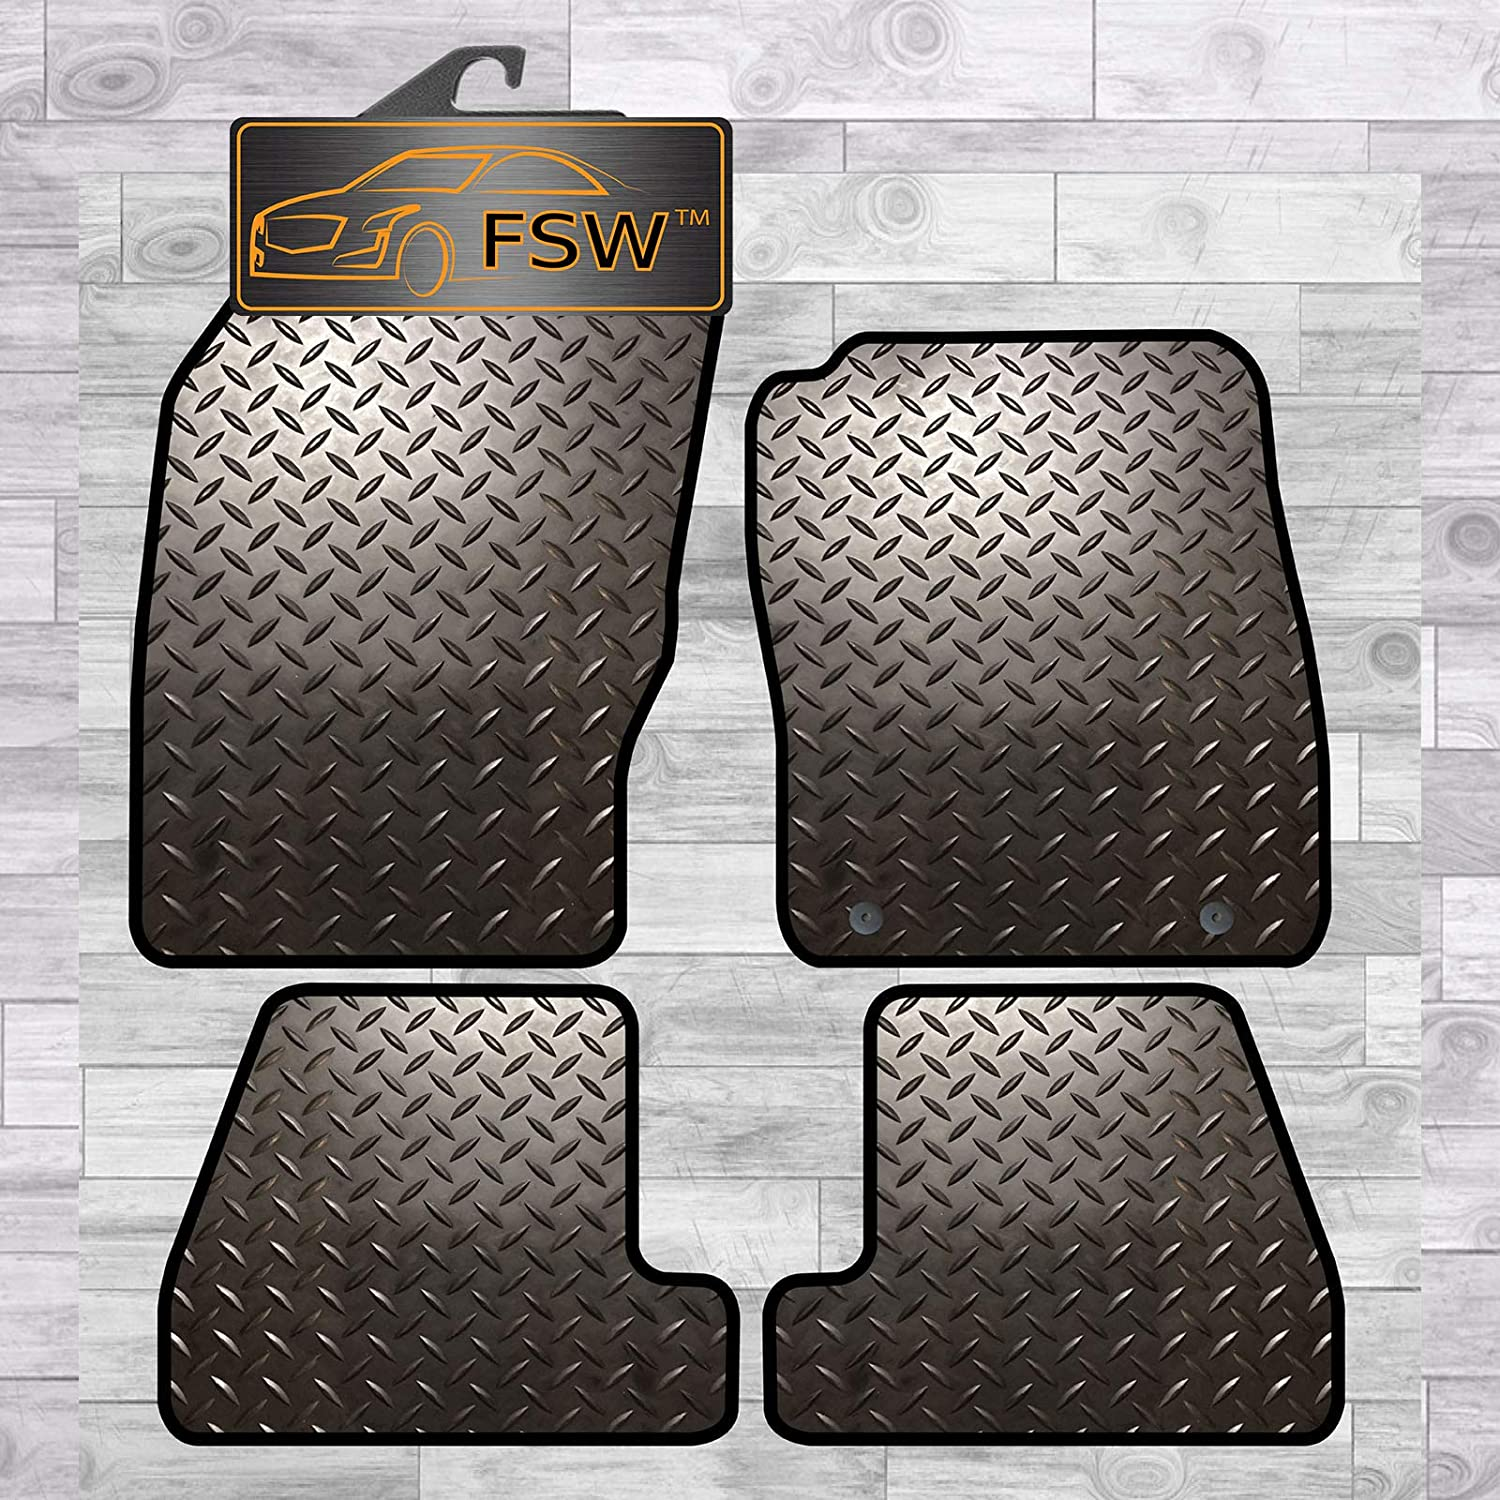 Focus 2011-2015 Fully Tailored 3MM Rubber Heavy Duty Car Floor Mats FSW